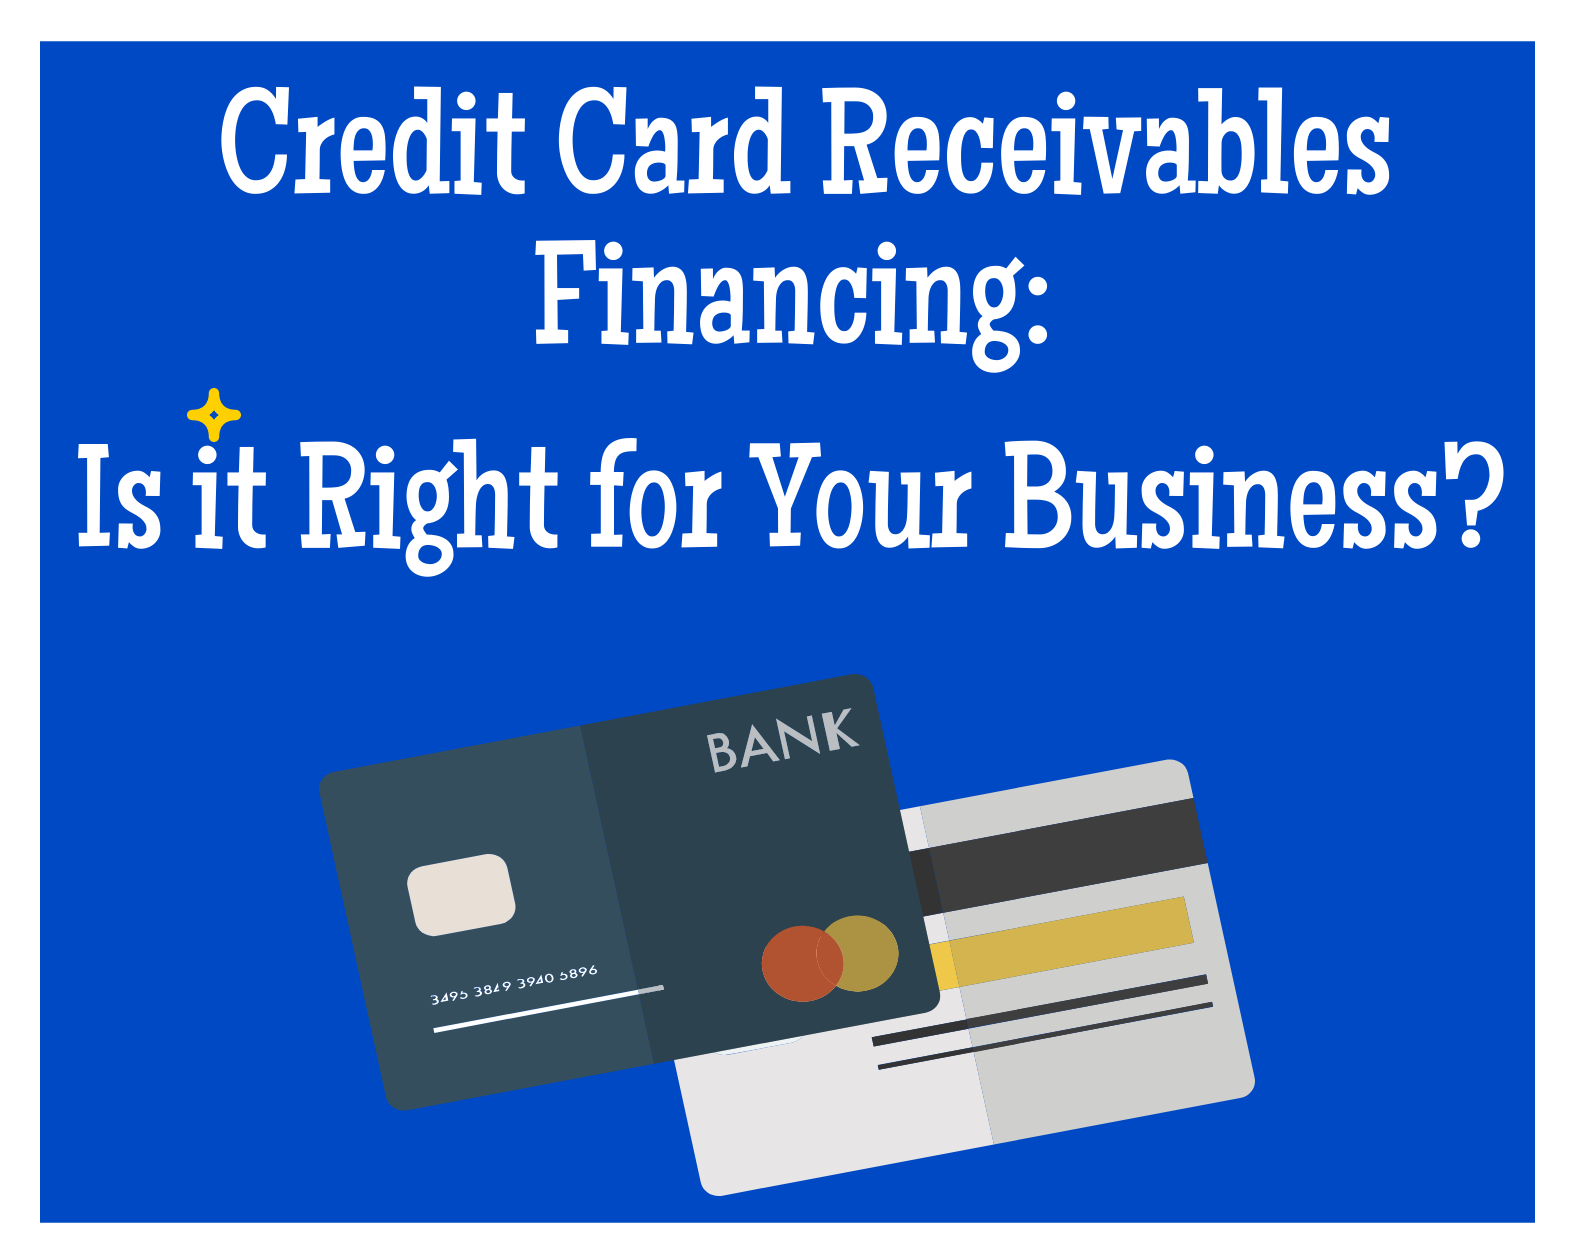 Credit Card Receivables Financing: Is it Right for Your Business?